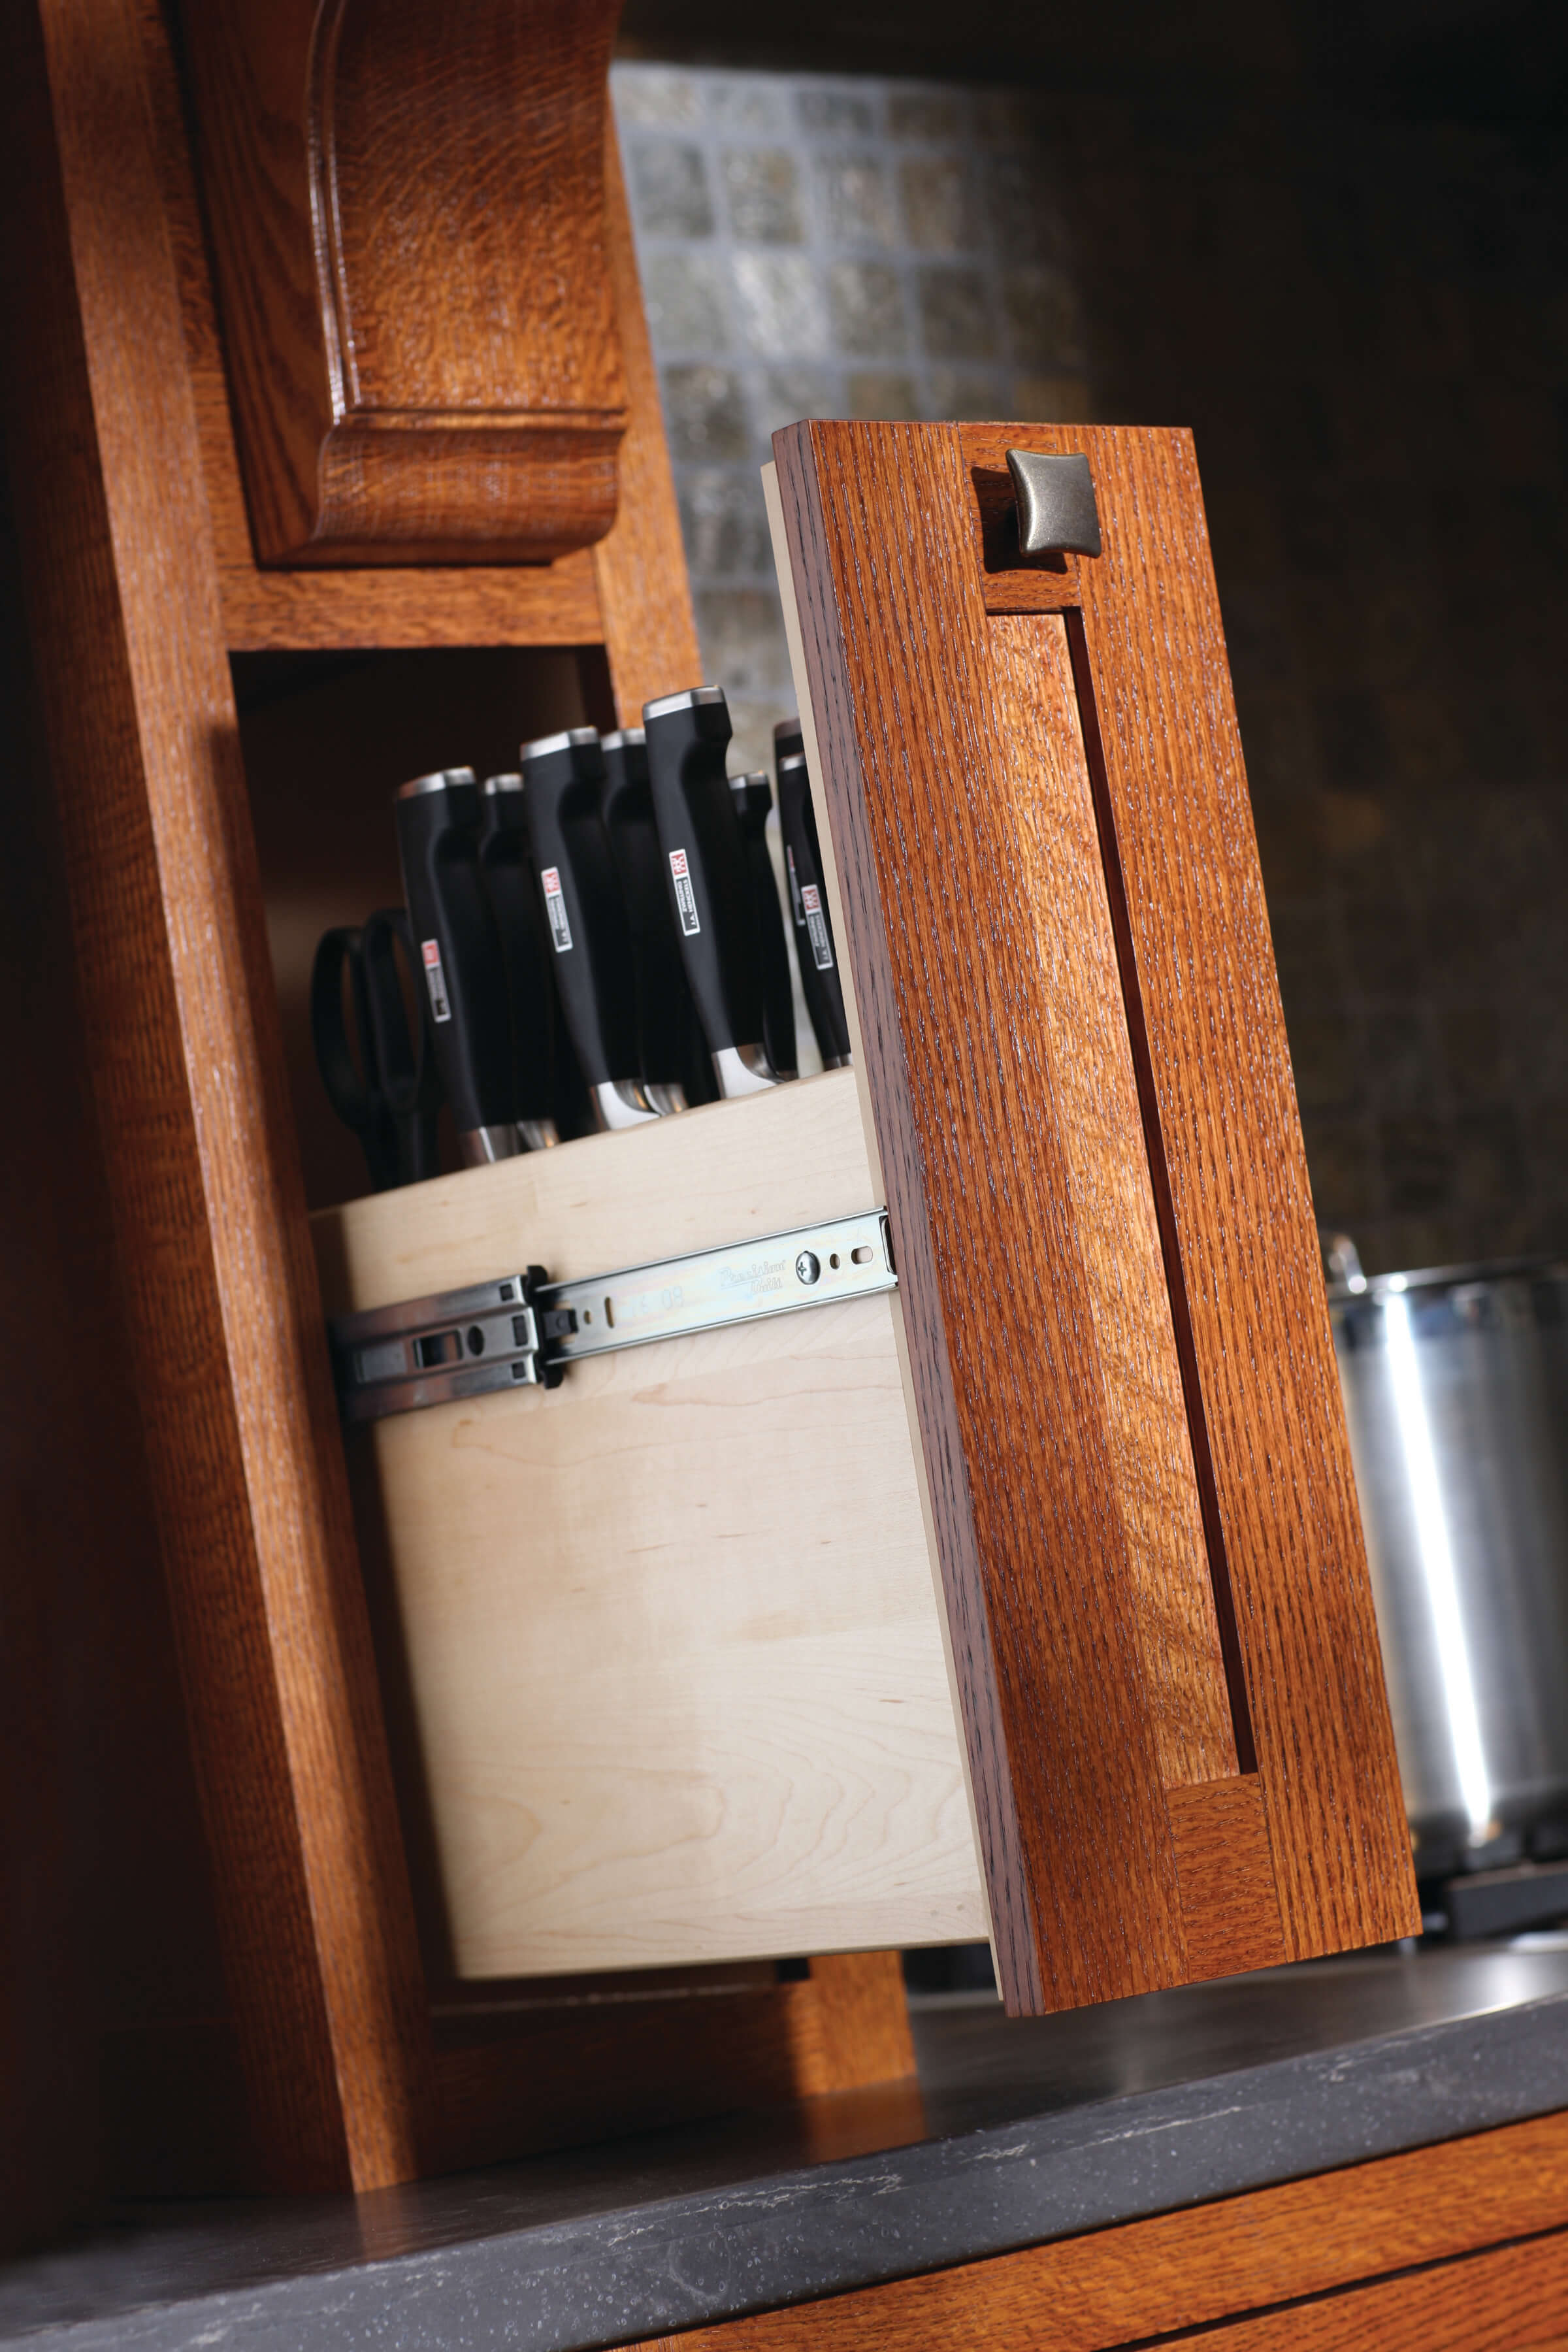 Interiors of cabinets commonly feature customized, well-thoughtout storage solutions like this wood hood pull-out for cuterly.